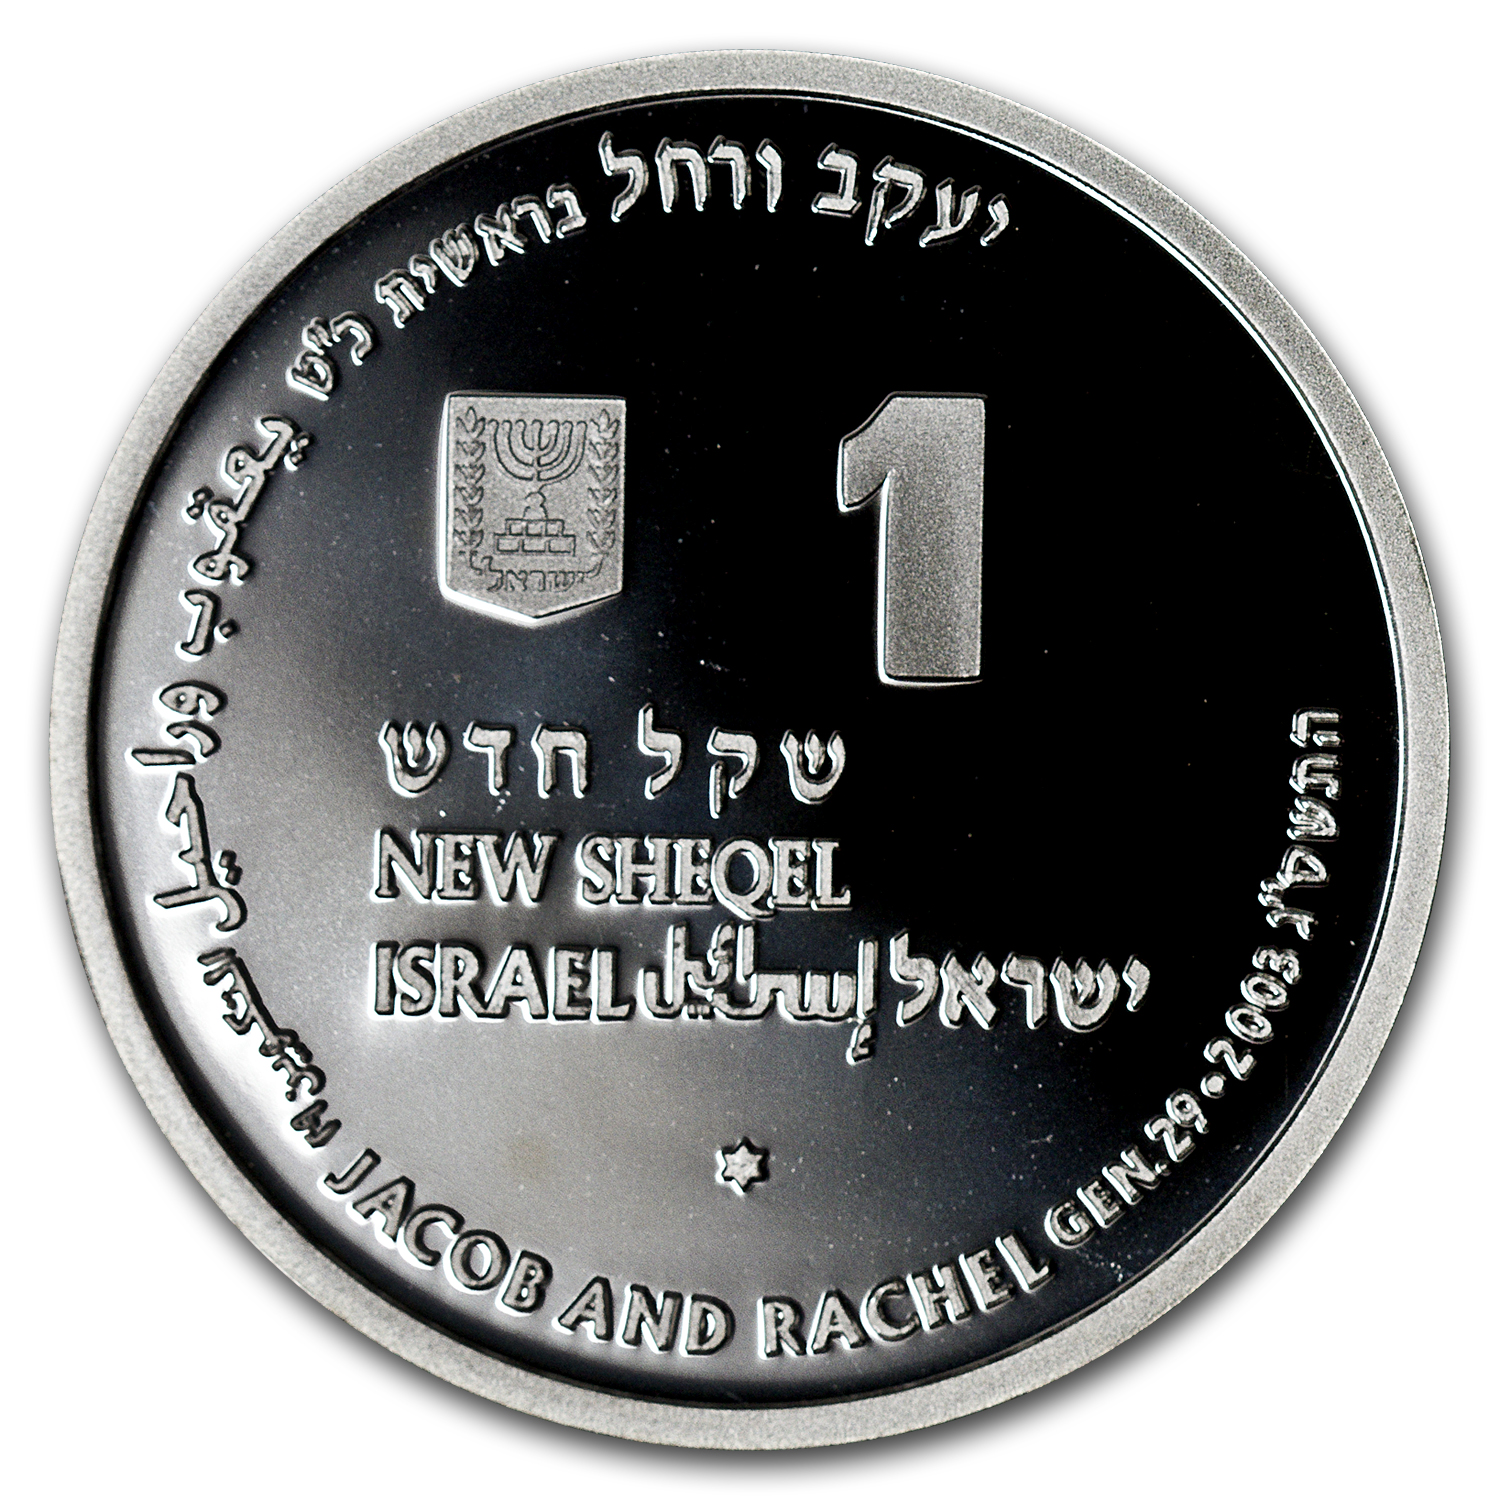 2003 Israel Silver 1 NIS Jacob and Rachel Proof-Like